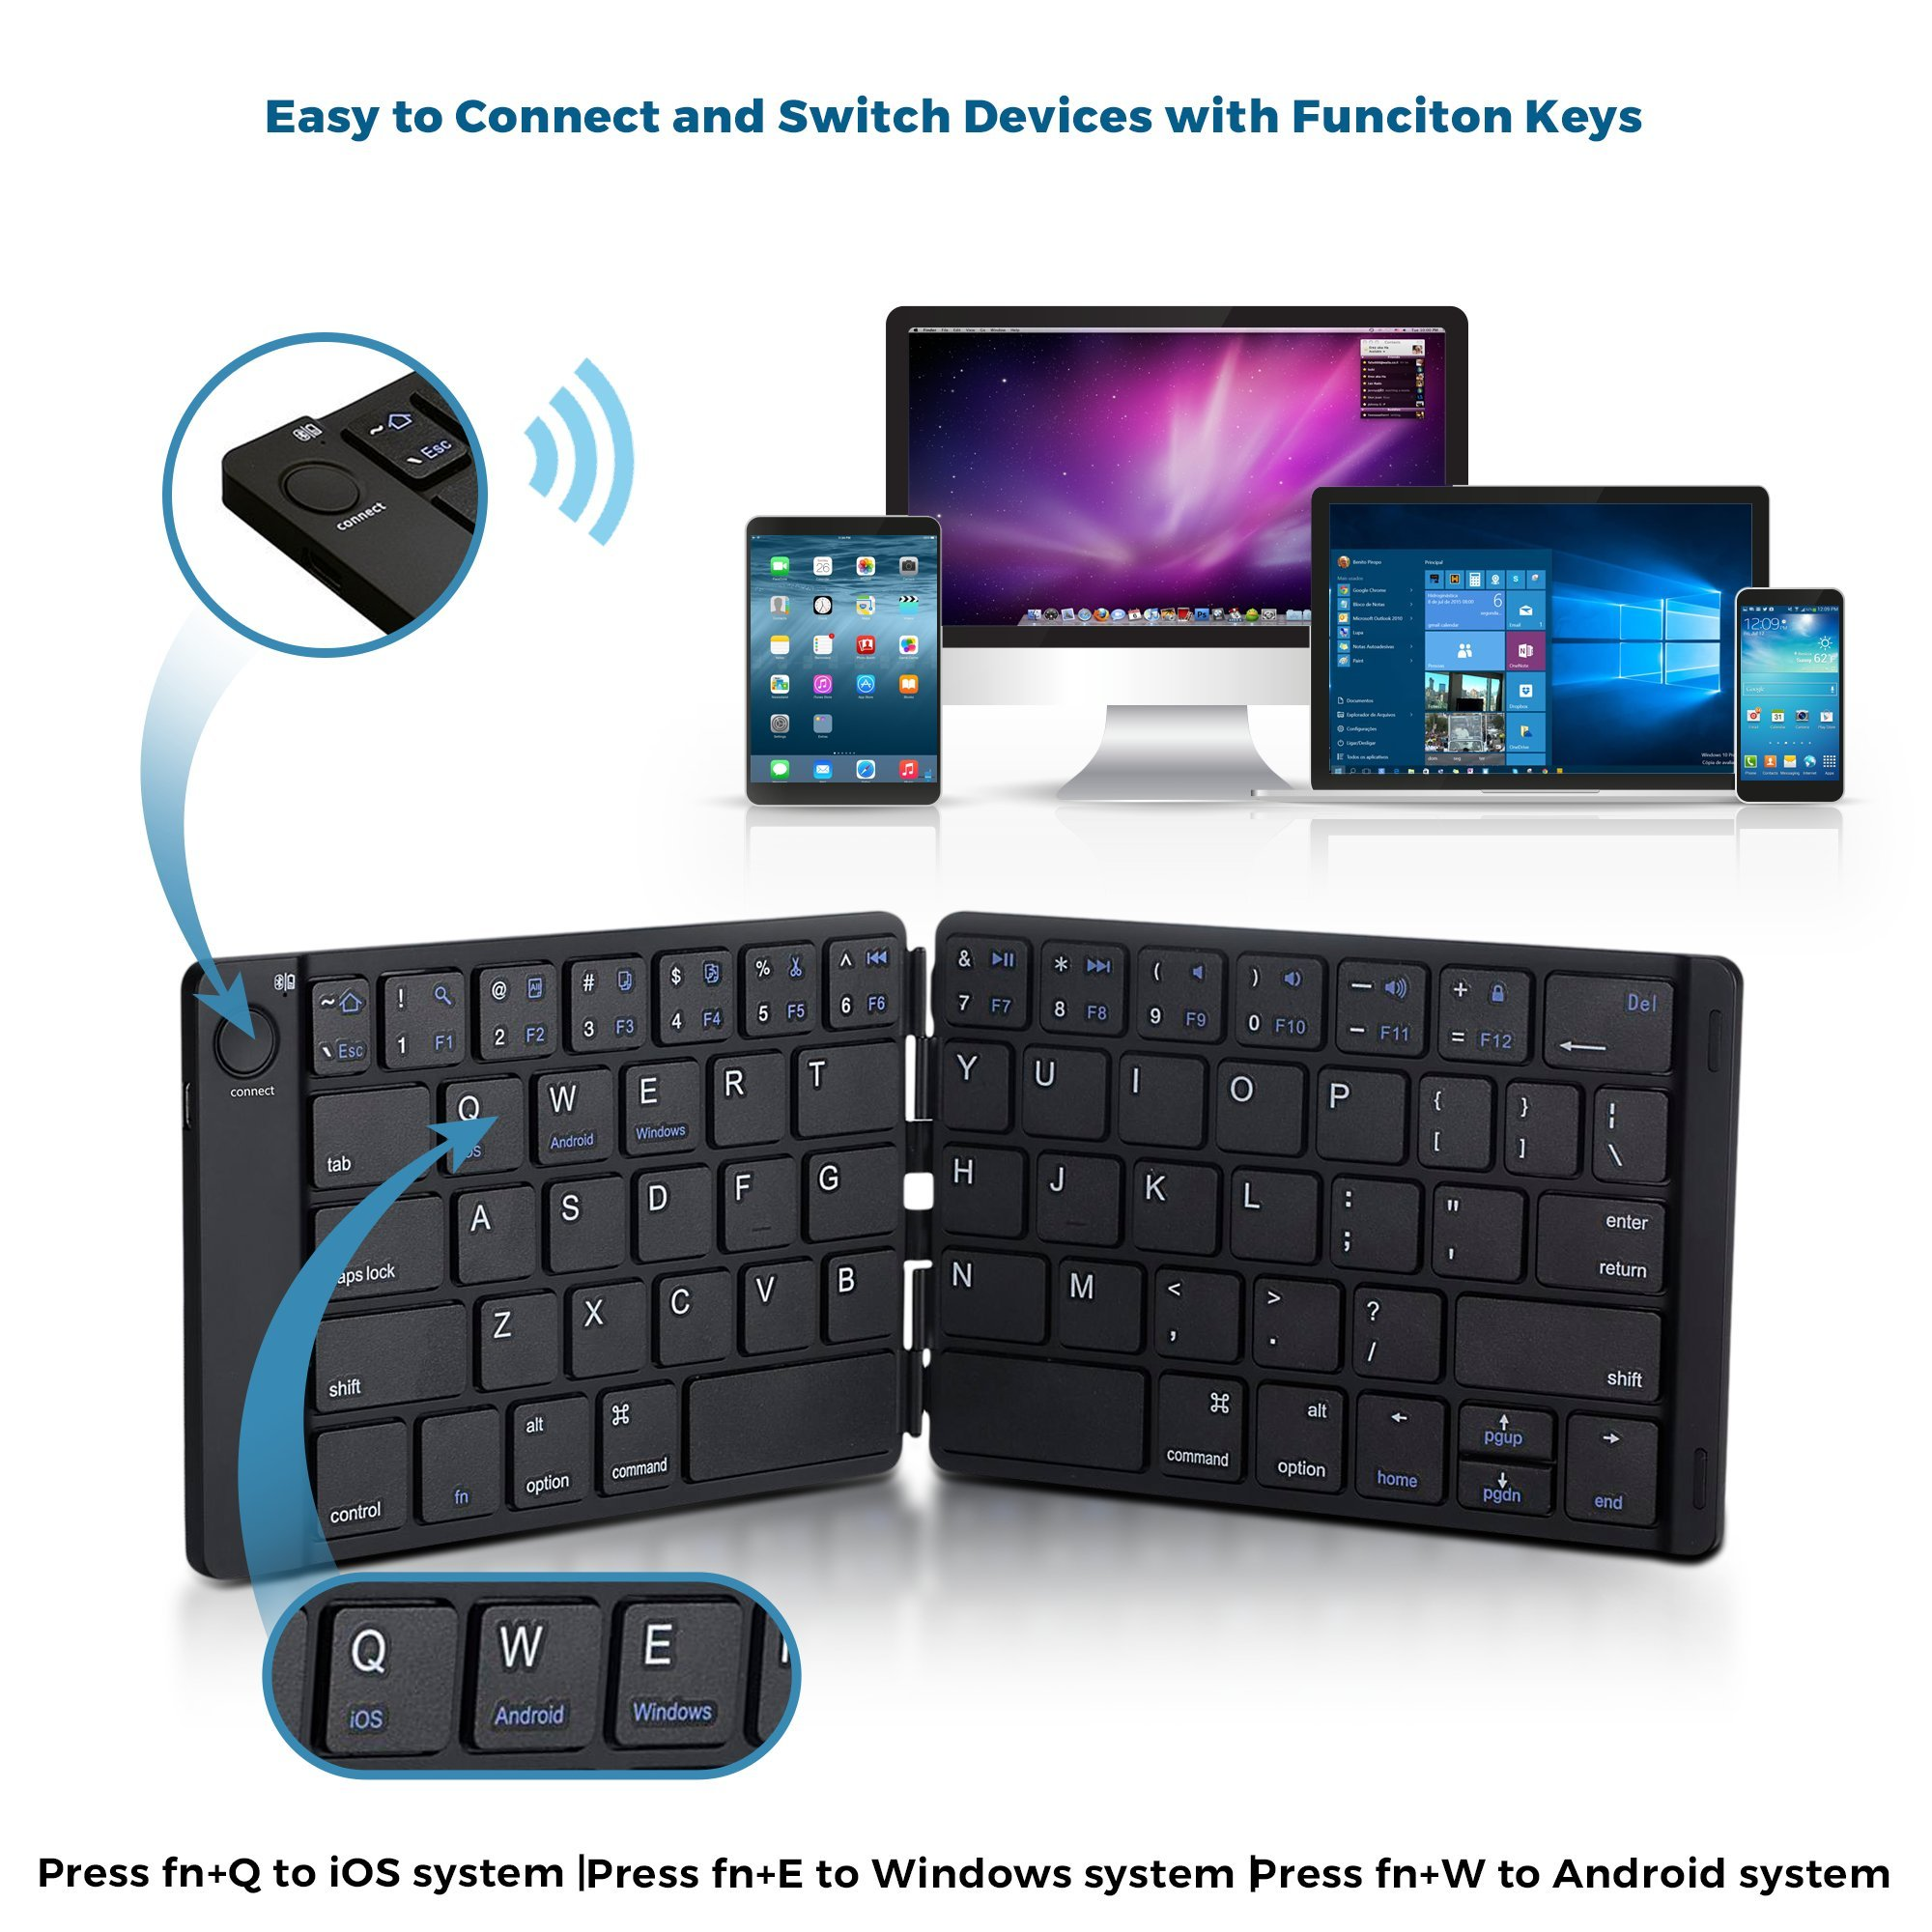 Foldable Bluetooth Keyboard Trendy Wag Portable Wireless Folding Rechargeable Pocket Size Full Size Ultra Slim for Windows Mac OS Android iOS PC iPad Samsung Tablet Smartphones by Trendy Wag (Image #2)